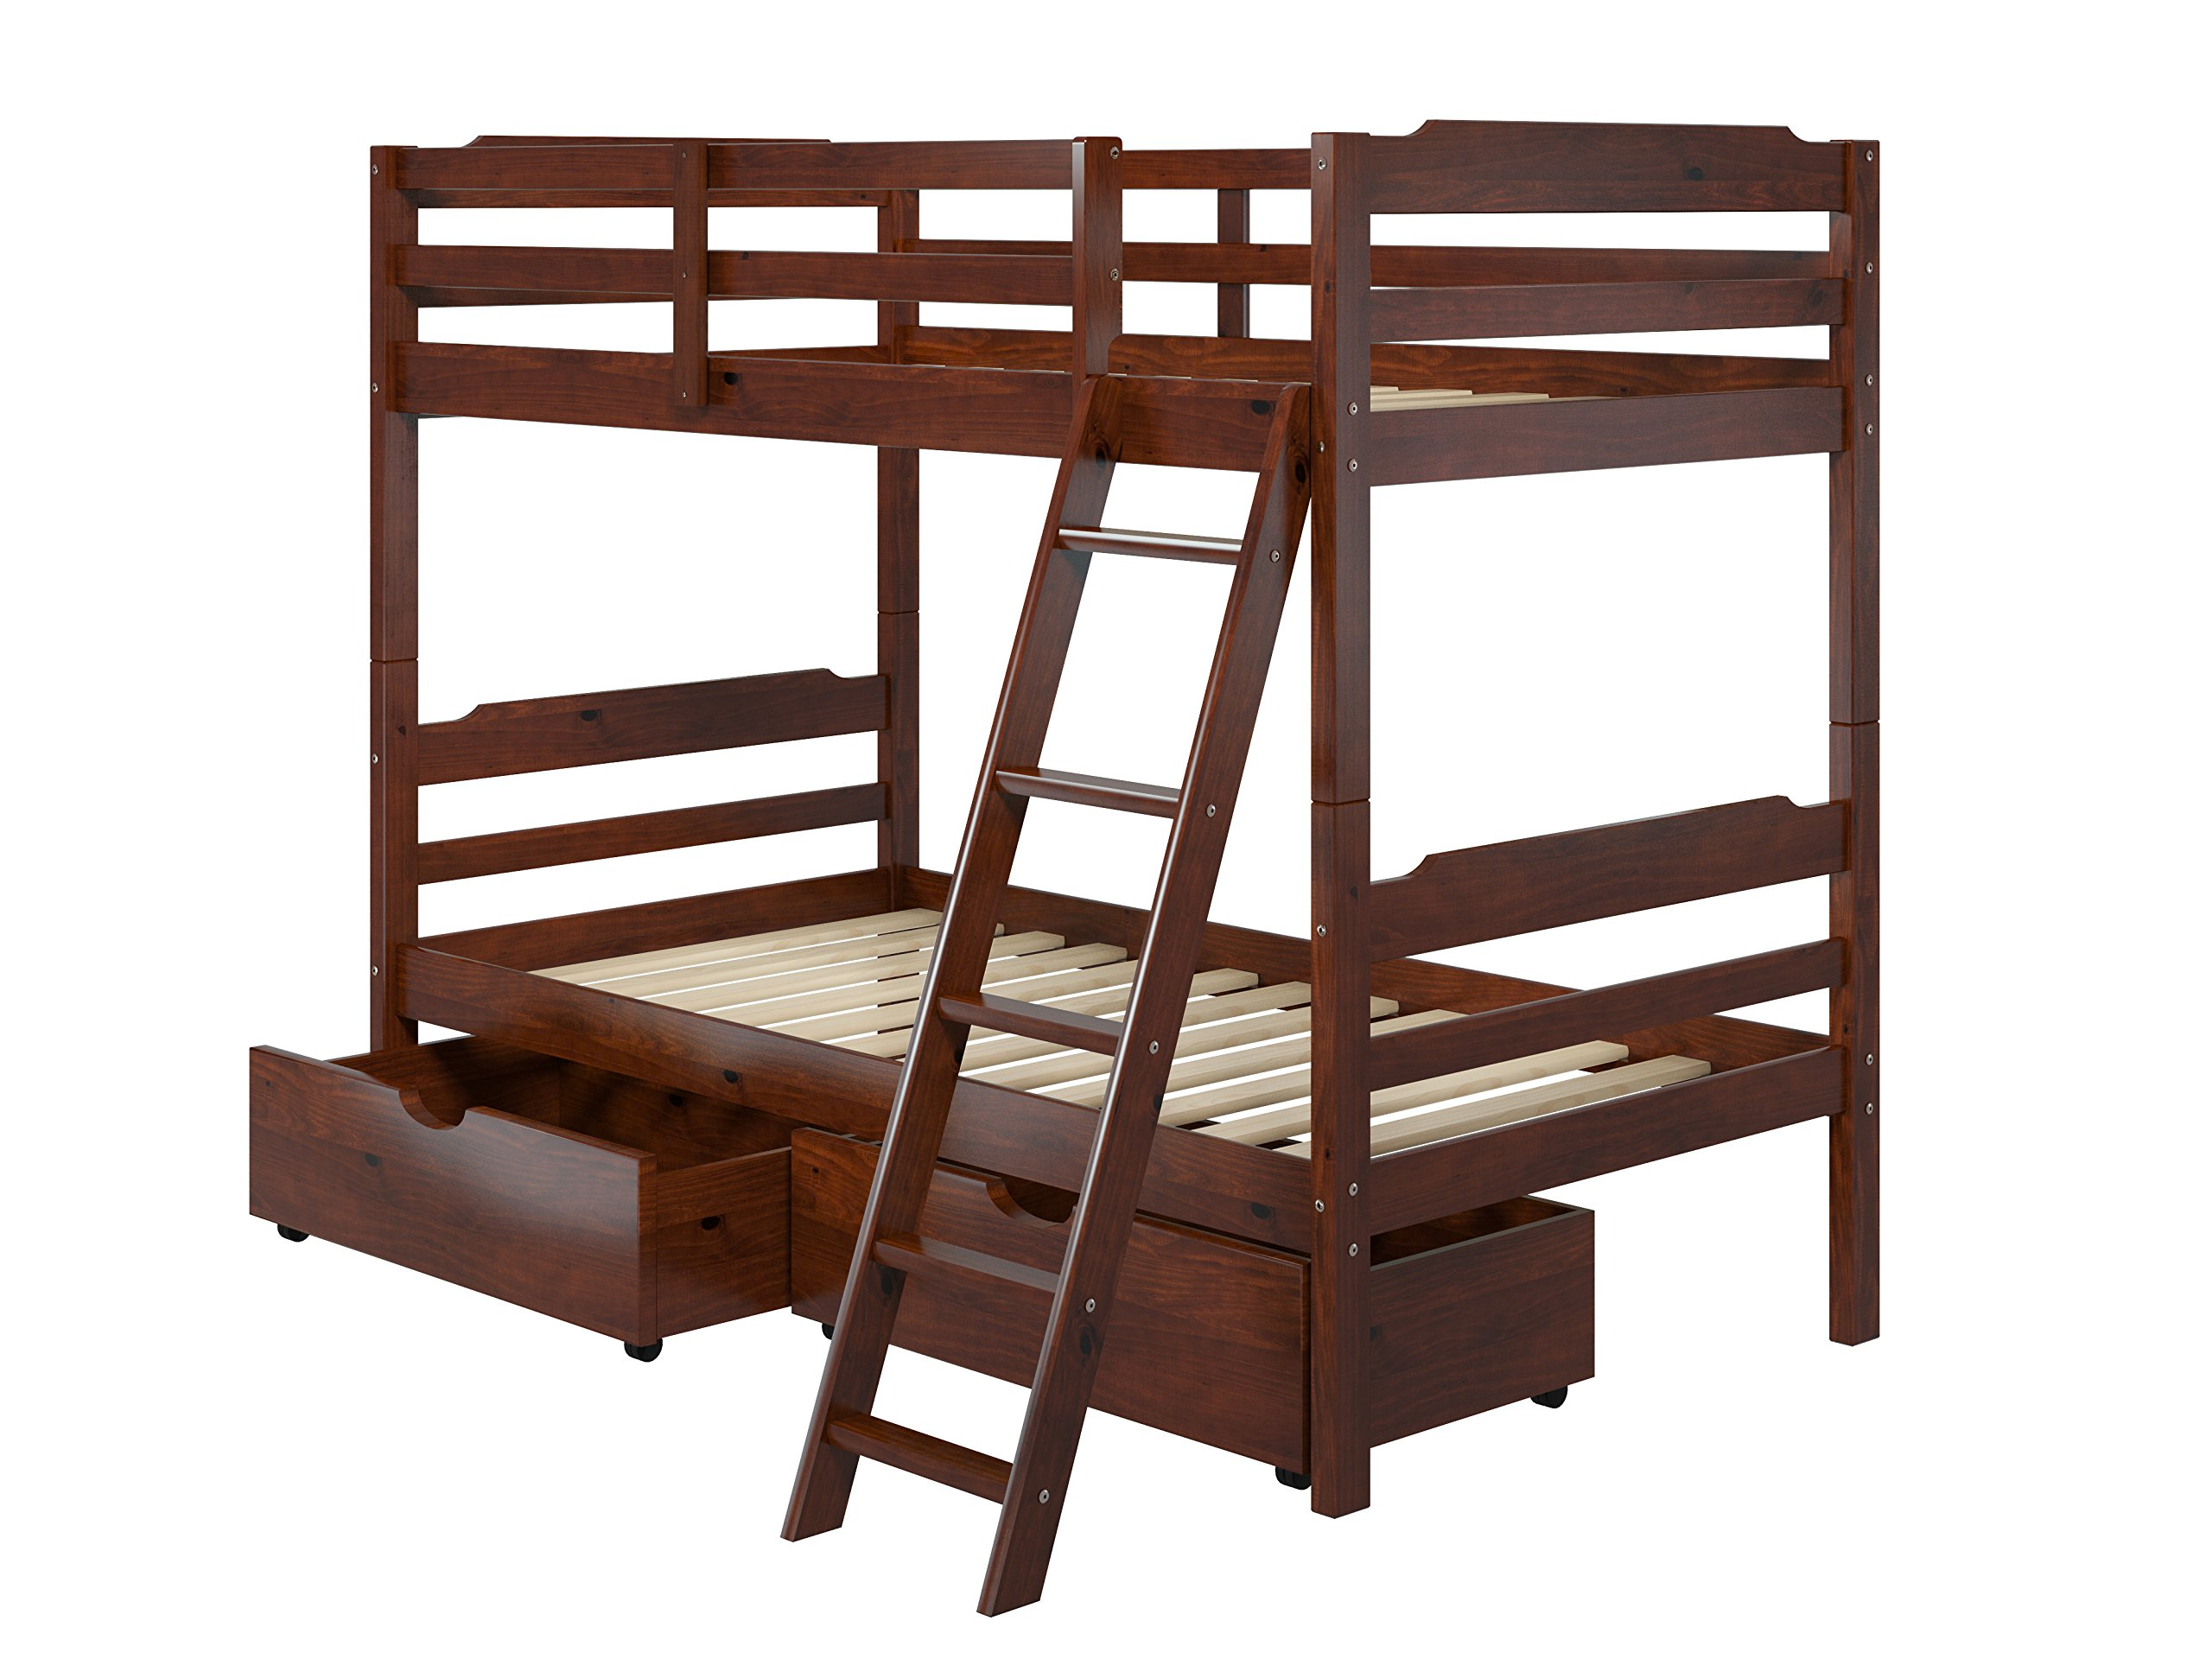 Manhattan Comfort Hayden 4.0 Collection Solid Pine Wood Twin Size Convertible Children's Bunk Bed Set with Storage Drawers, Twin, Matte Brown